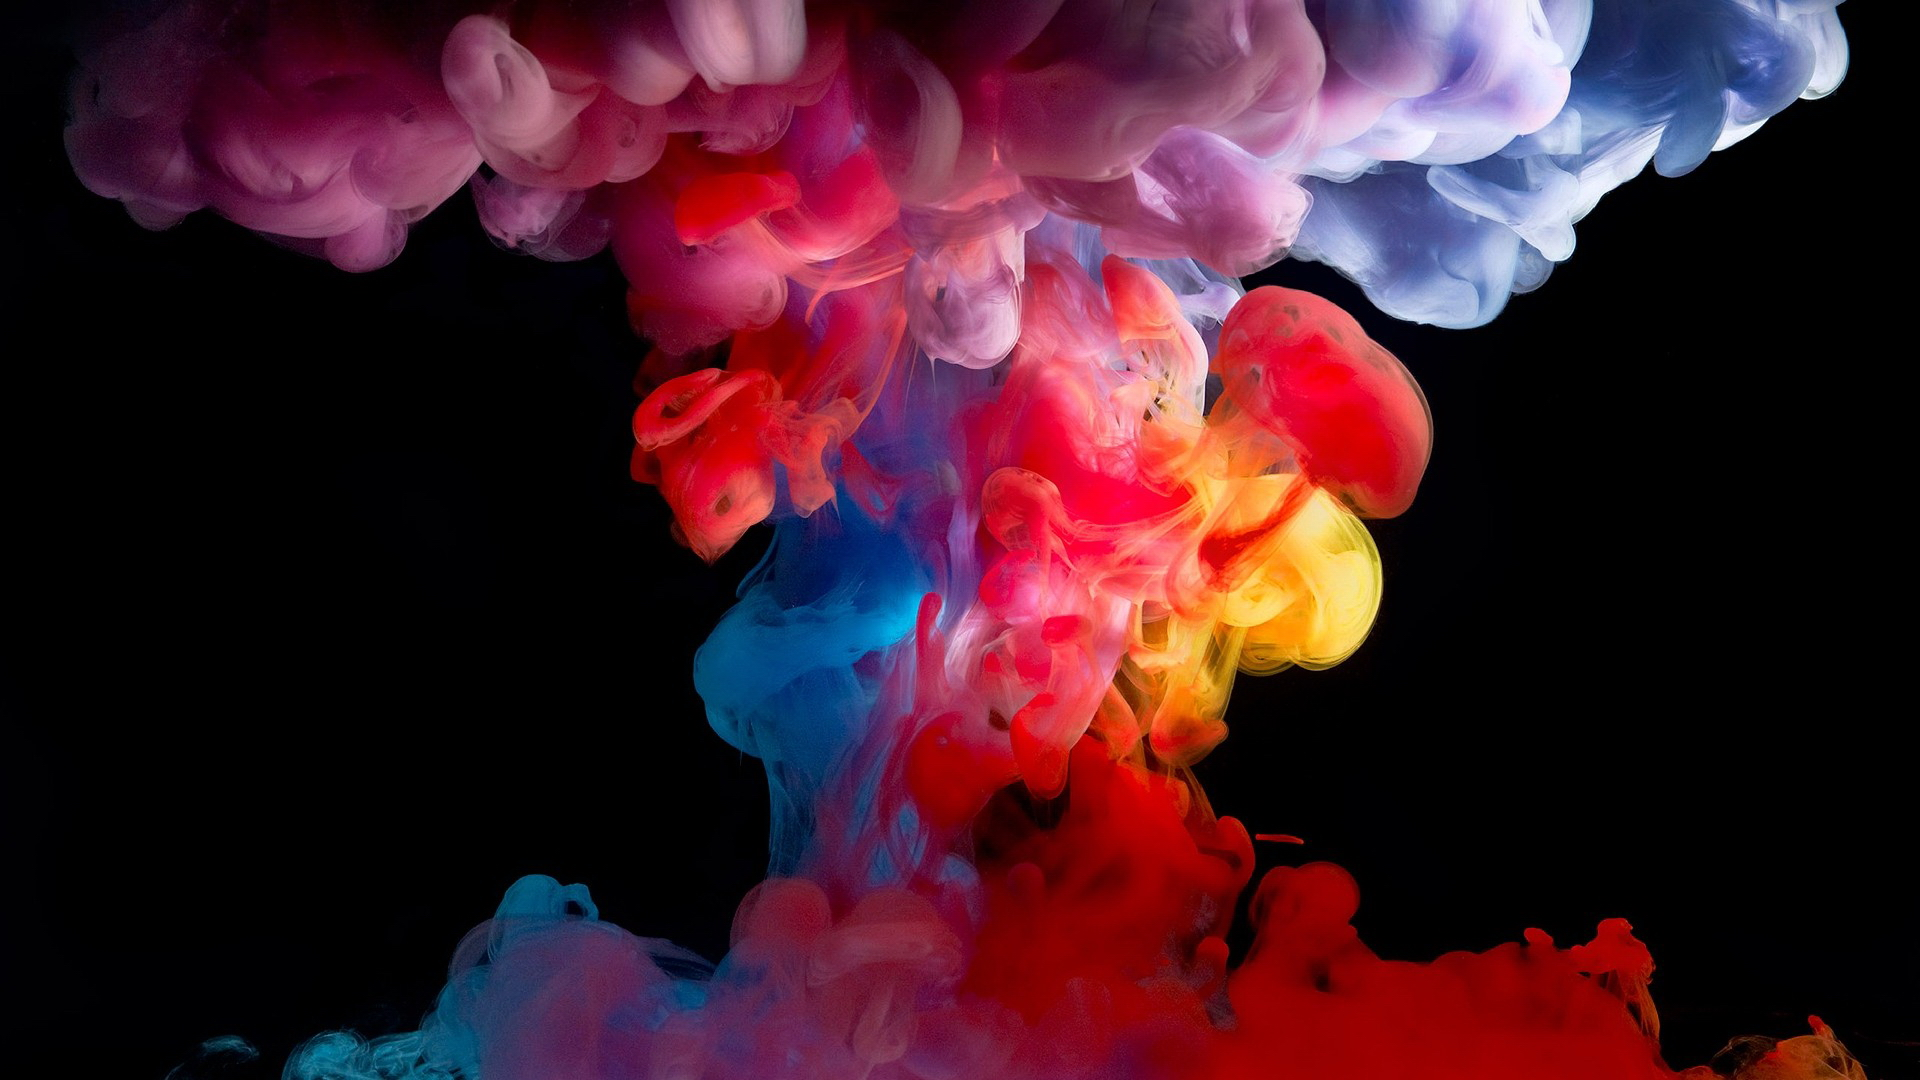 Color Smoke Wallpaper Images Cool Wallpapers 1920x1080px